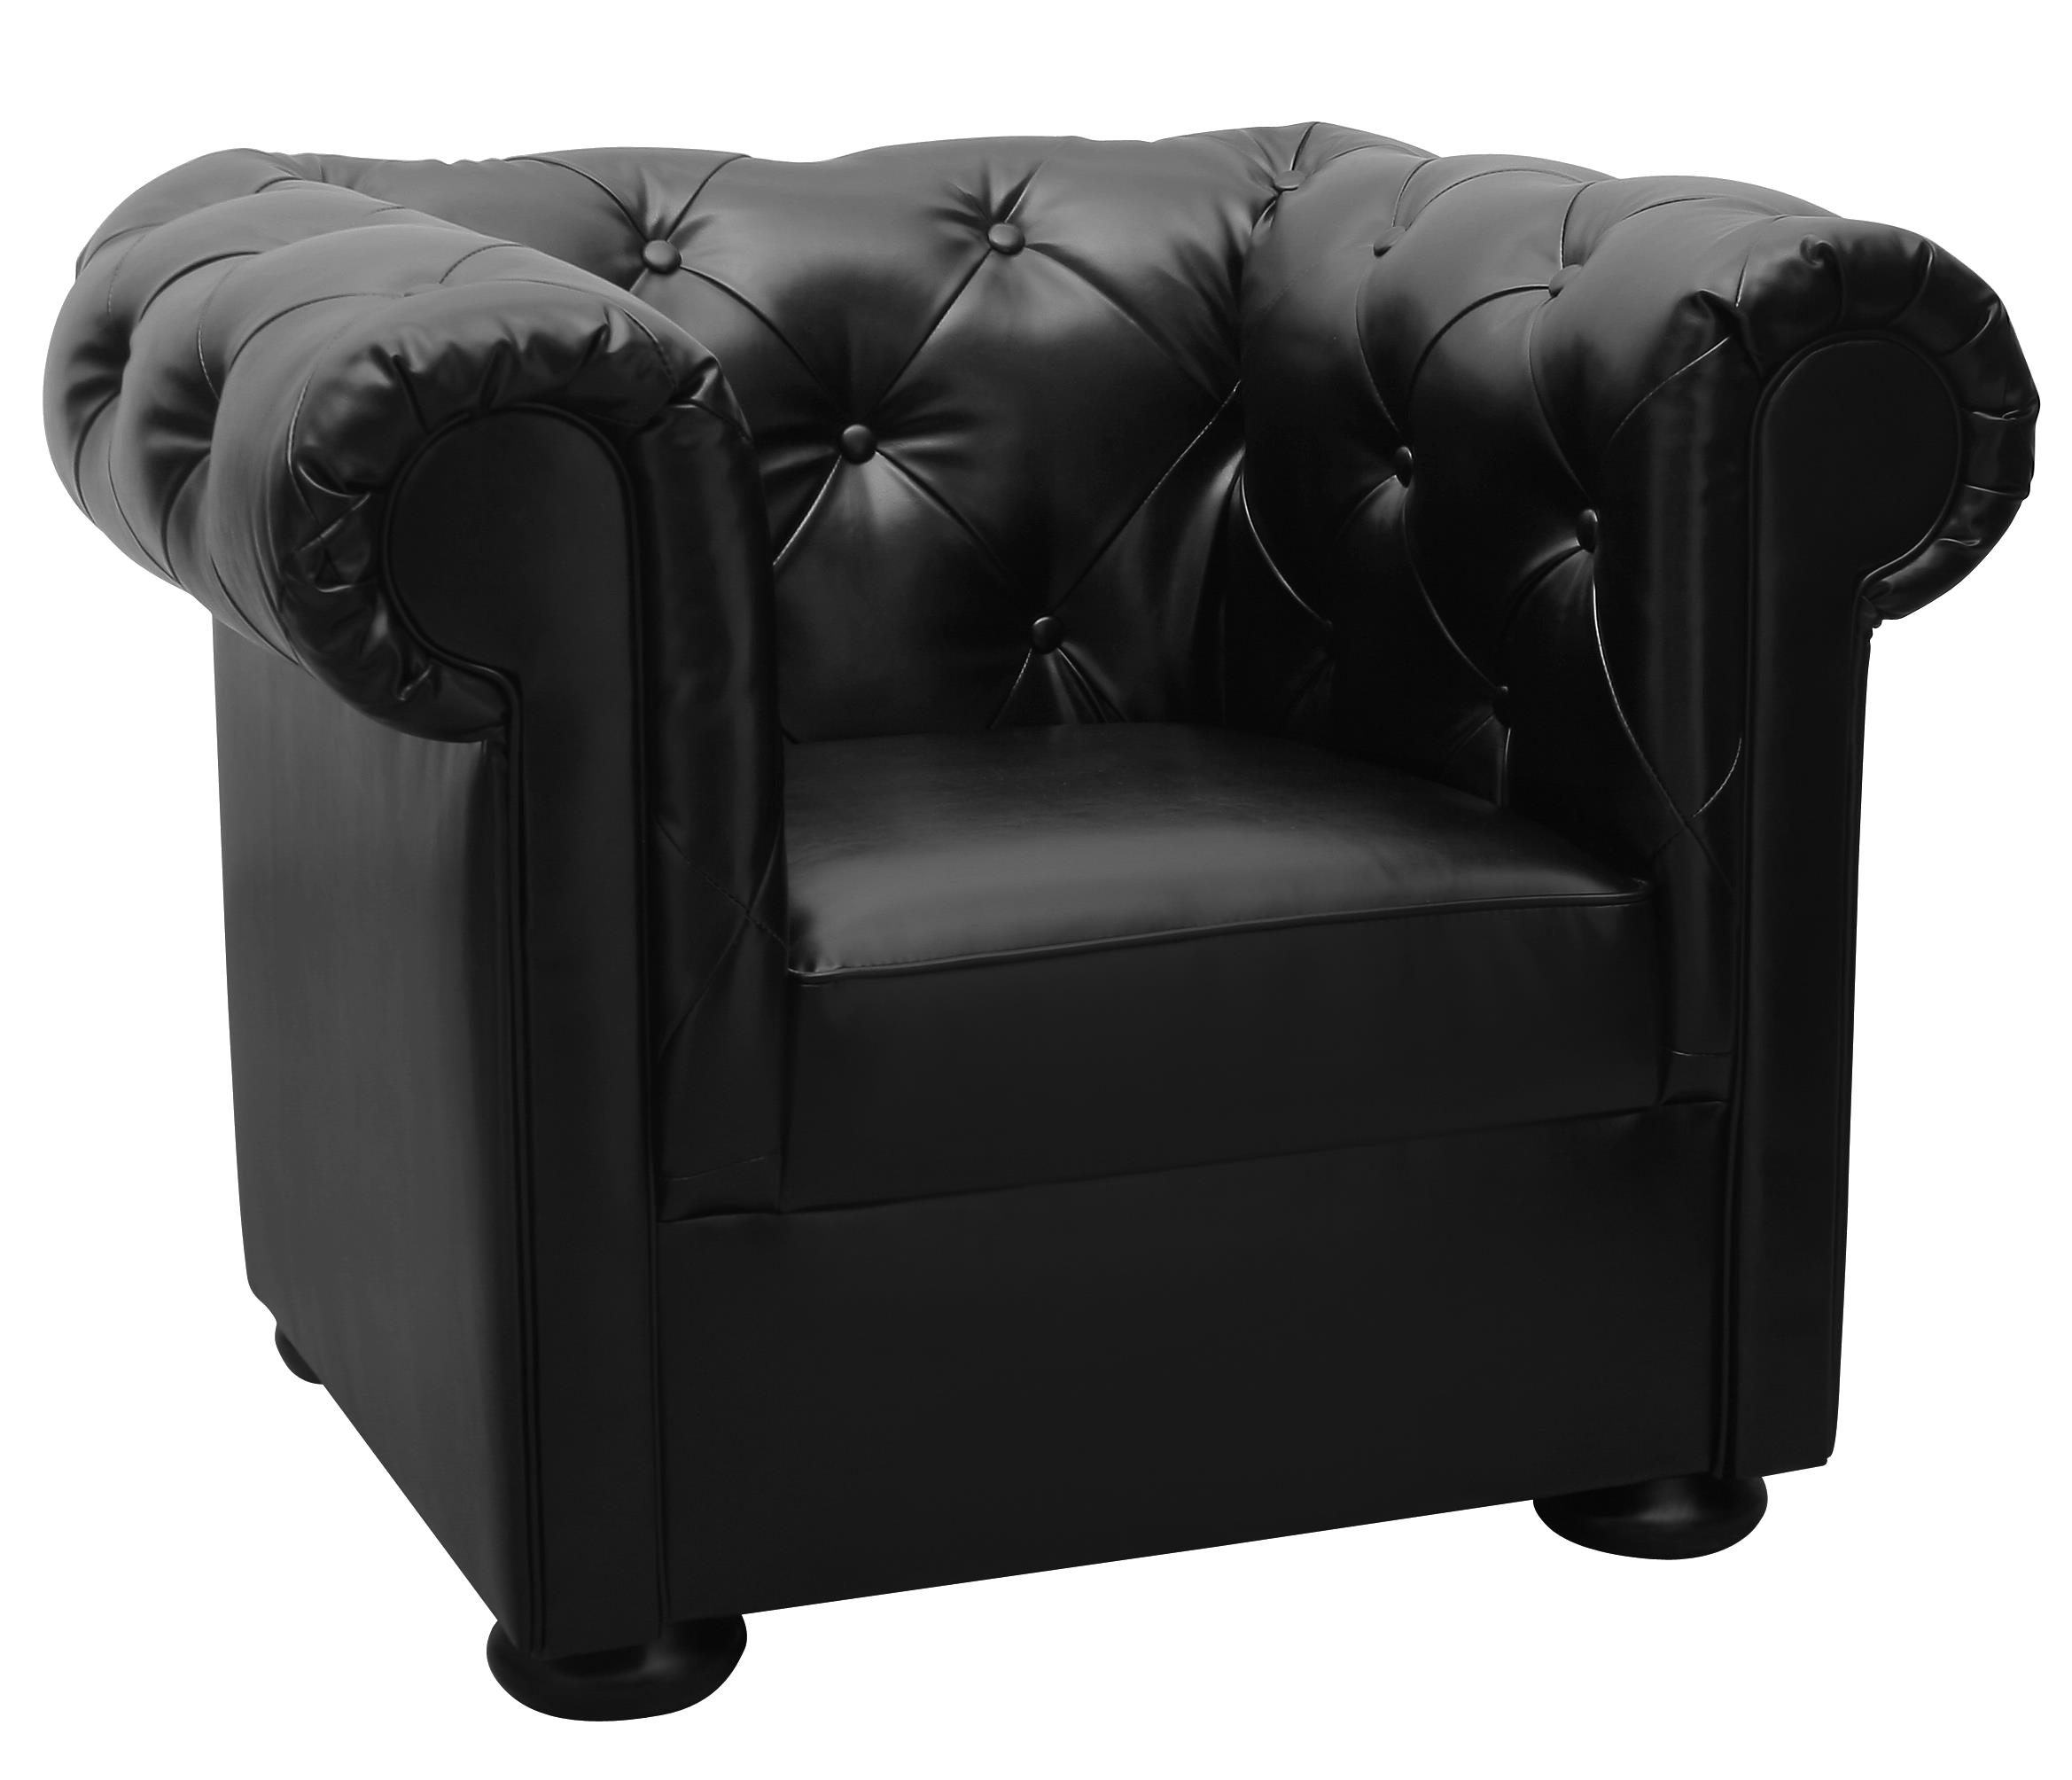 Upholstered furniture - category photo